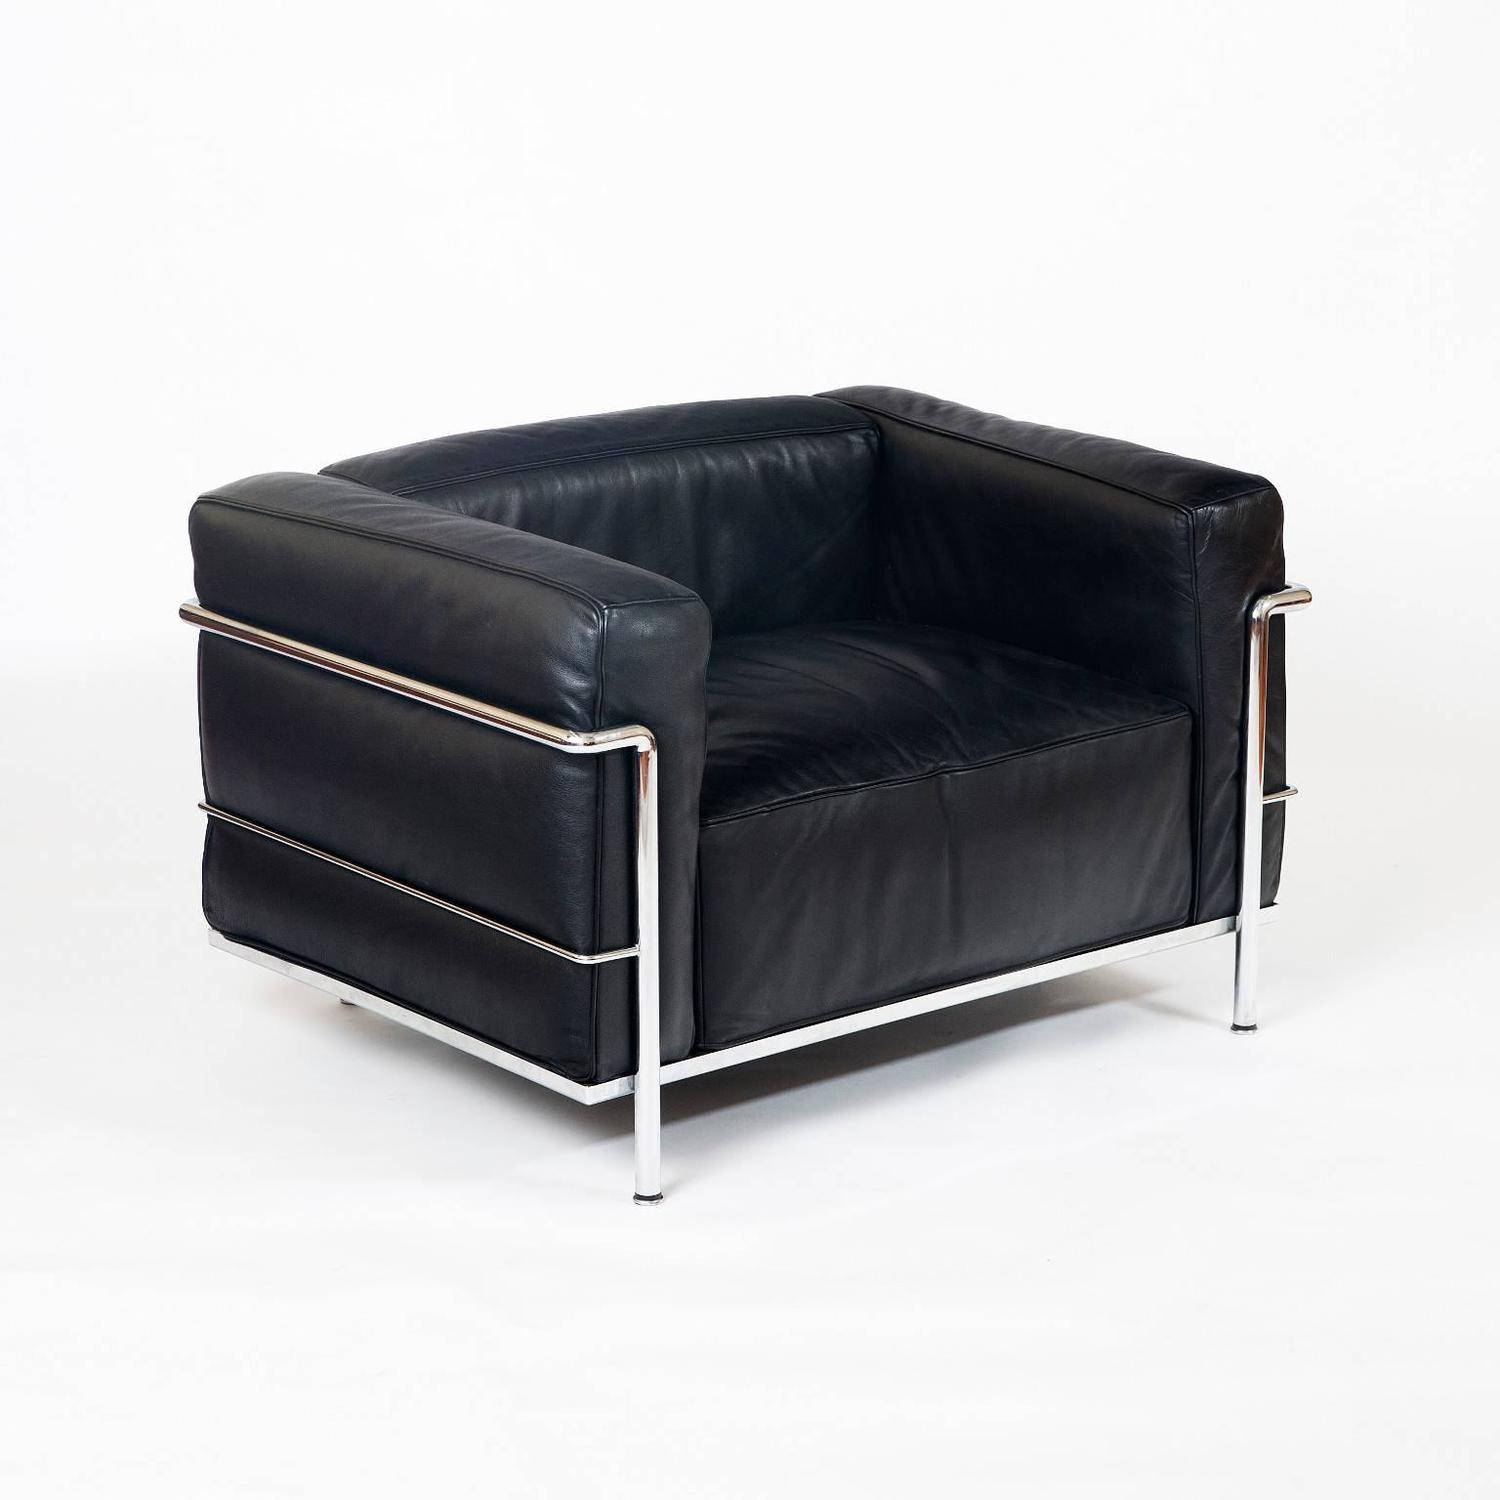 Le corbusier lc03 le grand comfort lounge chairs at 1stdibs for Le corbusier chair history